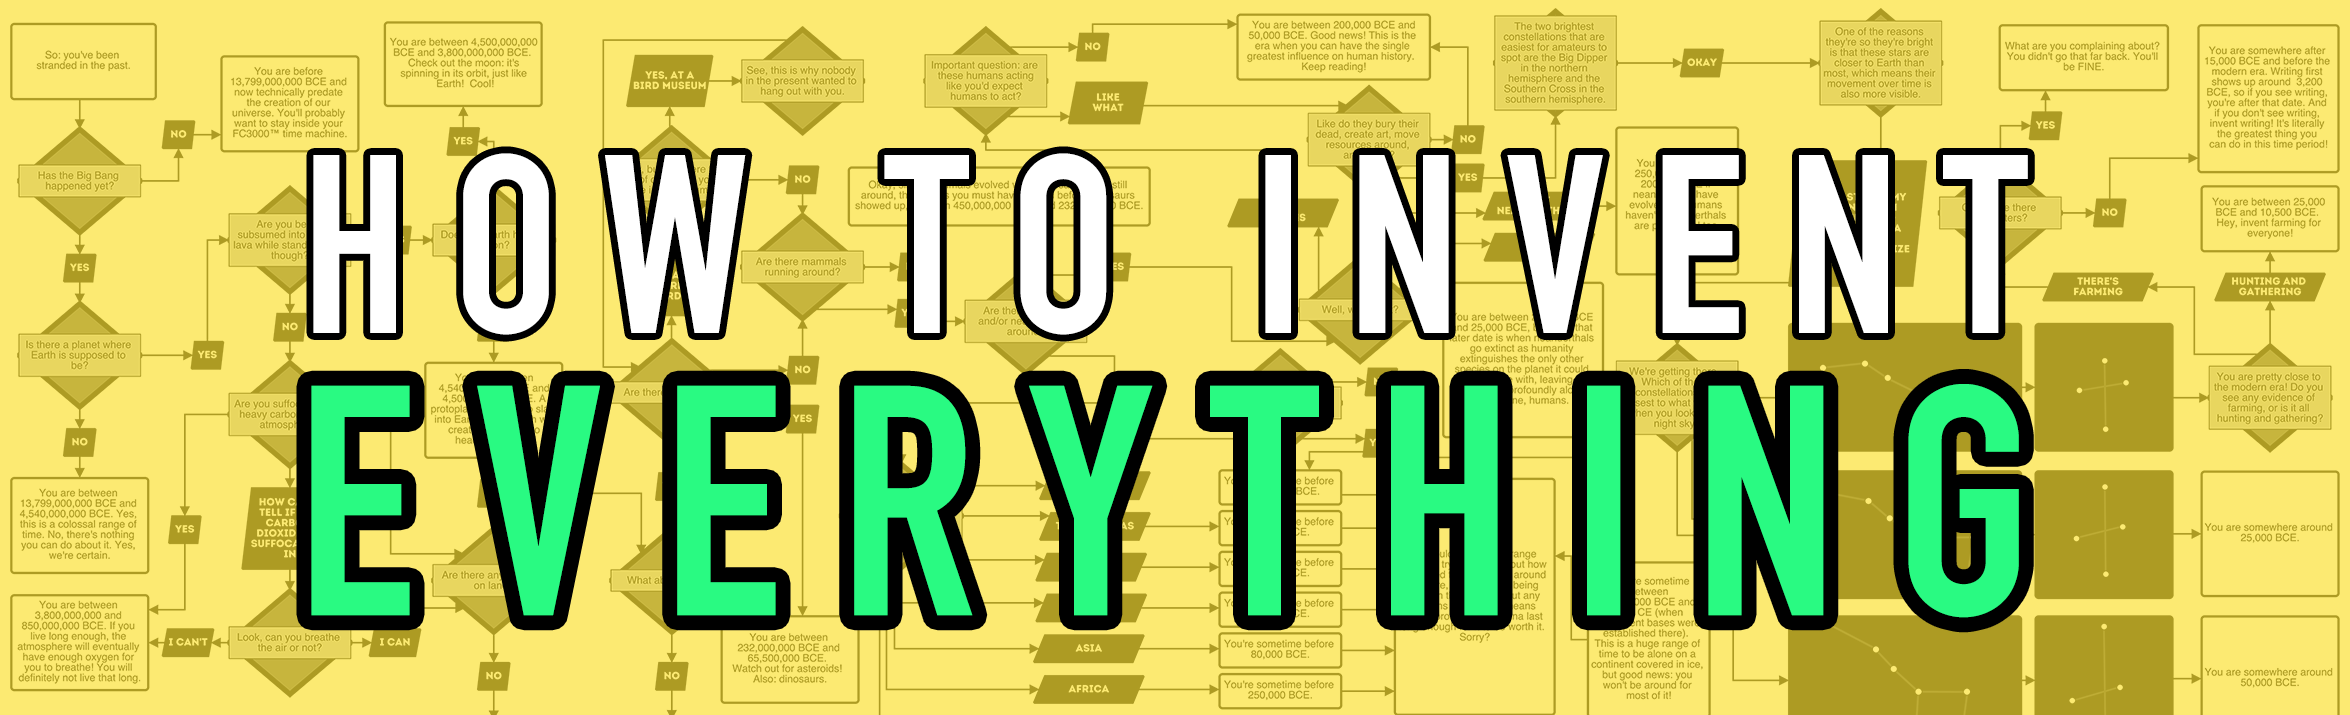 How to Invent Everything Ryan North Banner